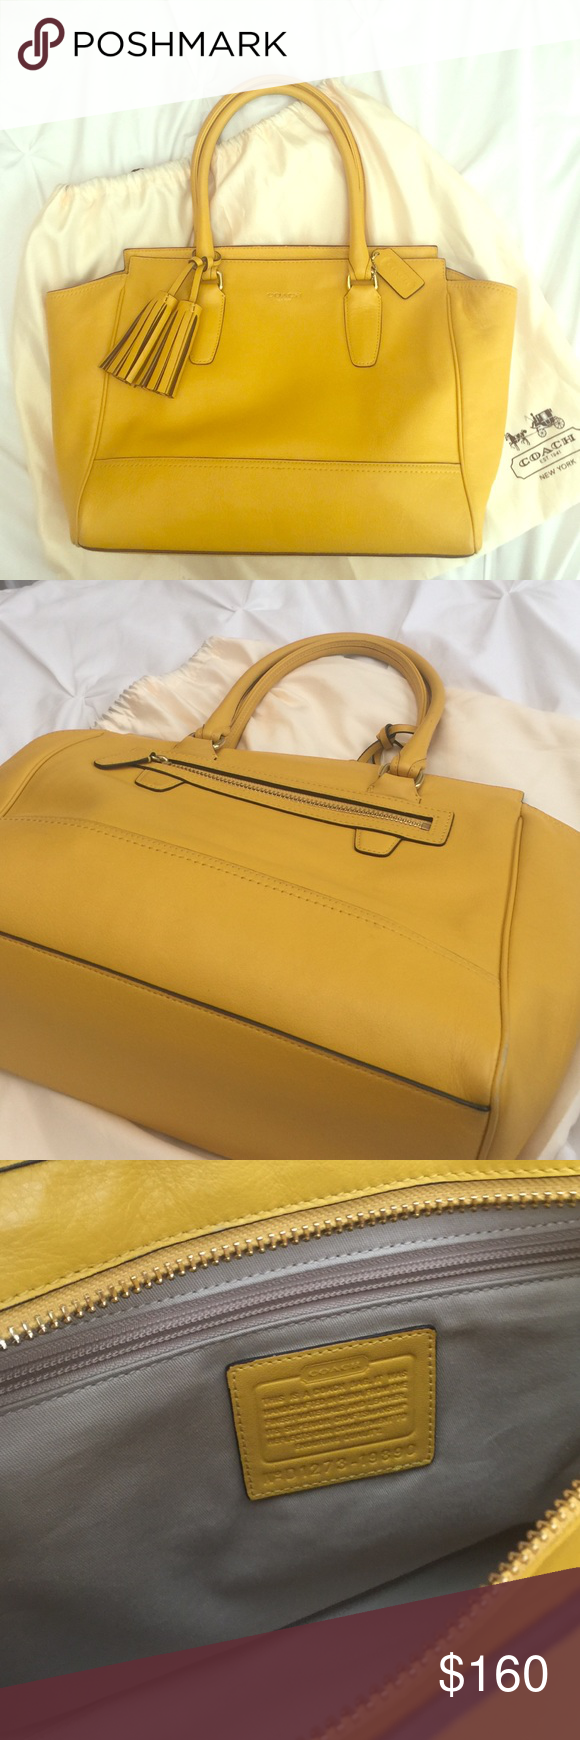 """Beautiful Yellow Coach Bag I absolutely LOVE this bag. Perfect size, perfect color!❤️ Not at all sure I'm ready to part with it. Leather with gold hardware and leather tassels. There are a few worn places on the bottom corners, but not noticeable. Kept in dust bag when not in use. Handle drop 7.5"""" 13"""" X 4"""" X 10.5"""" Coach Bags Satchels"""